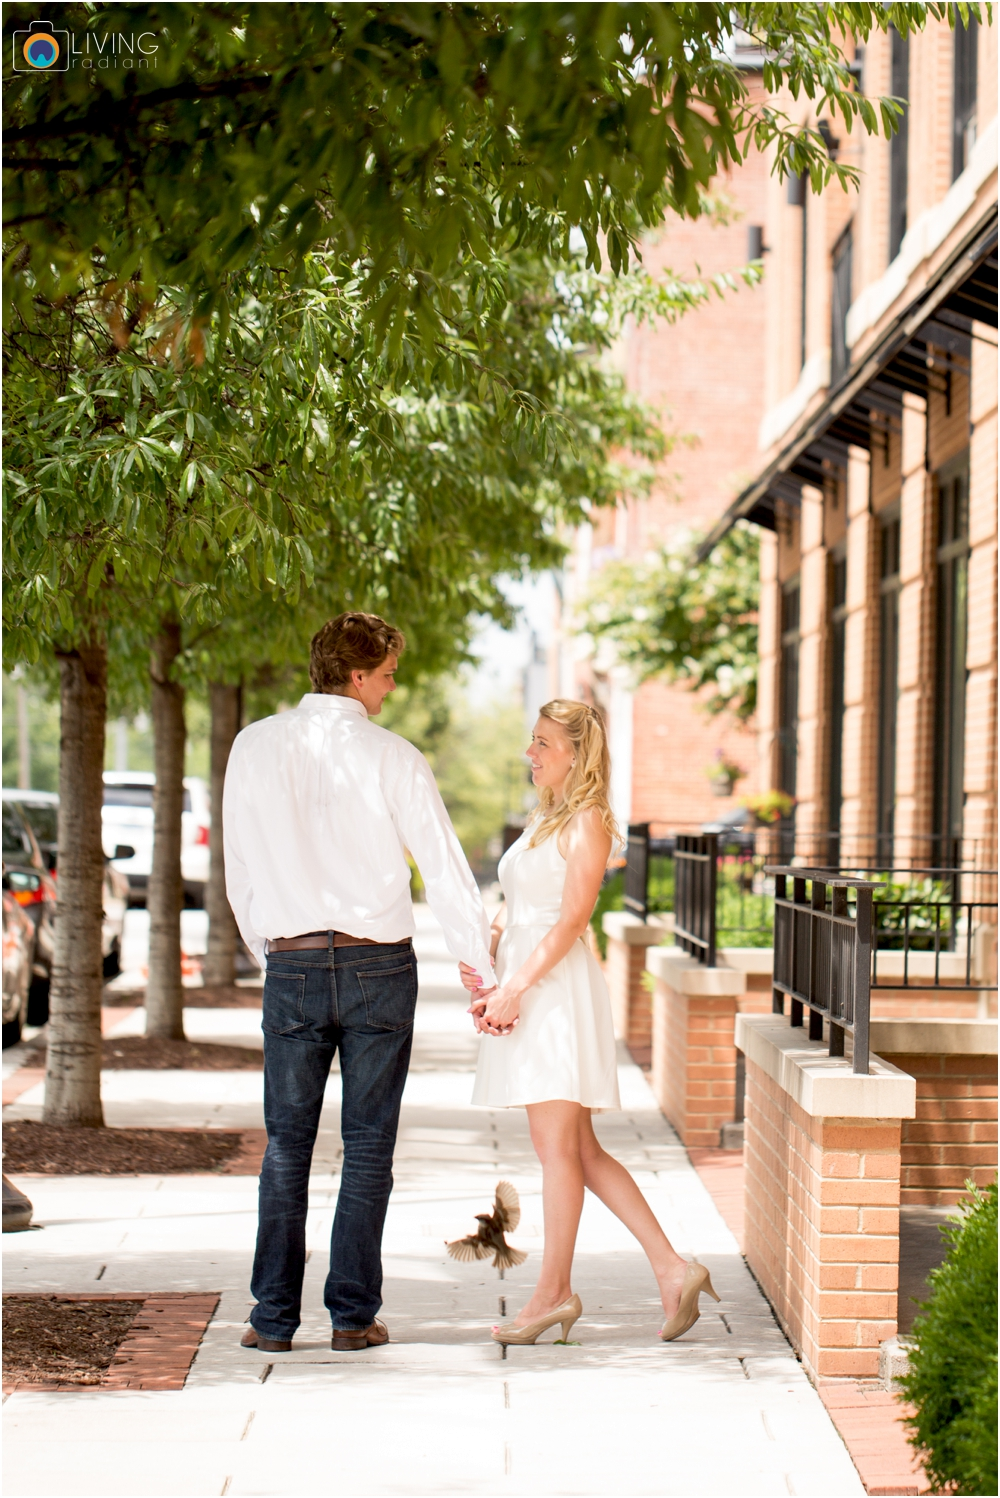 chris-katelynn-engagement-downtown-canton-living-radiant-photography-photos_0015.jpg